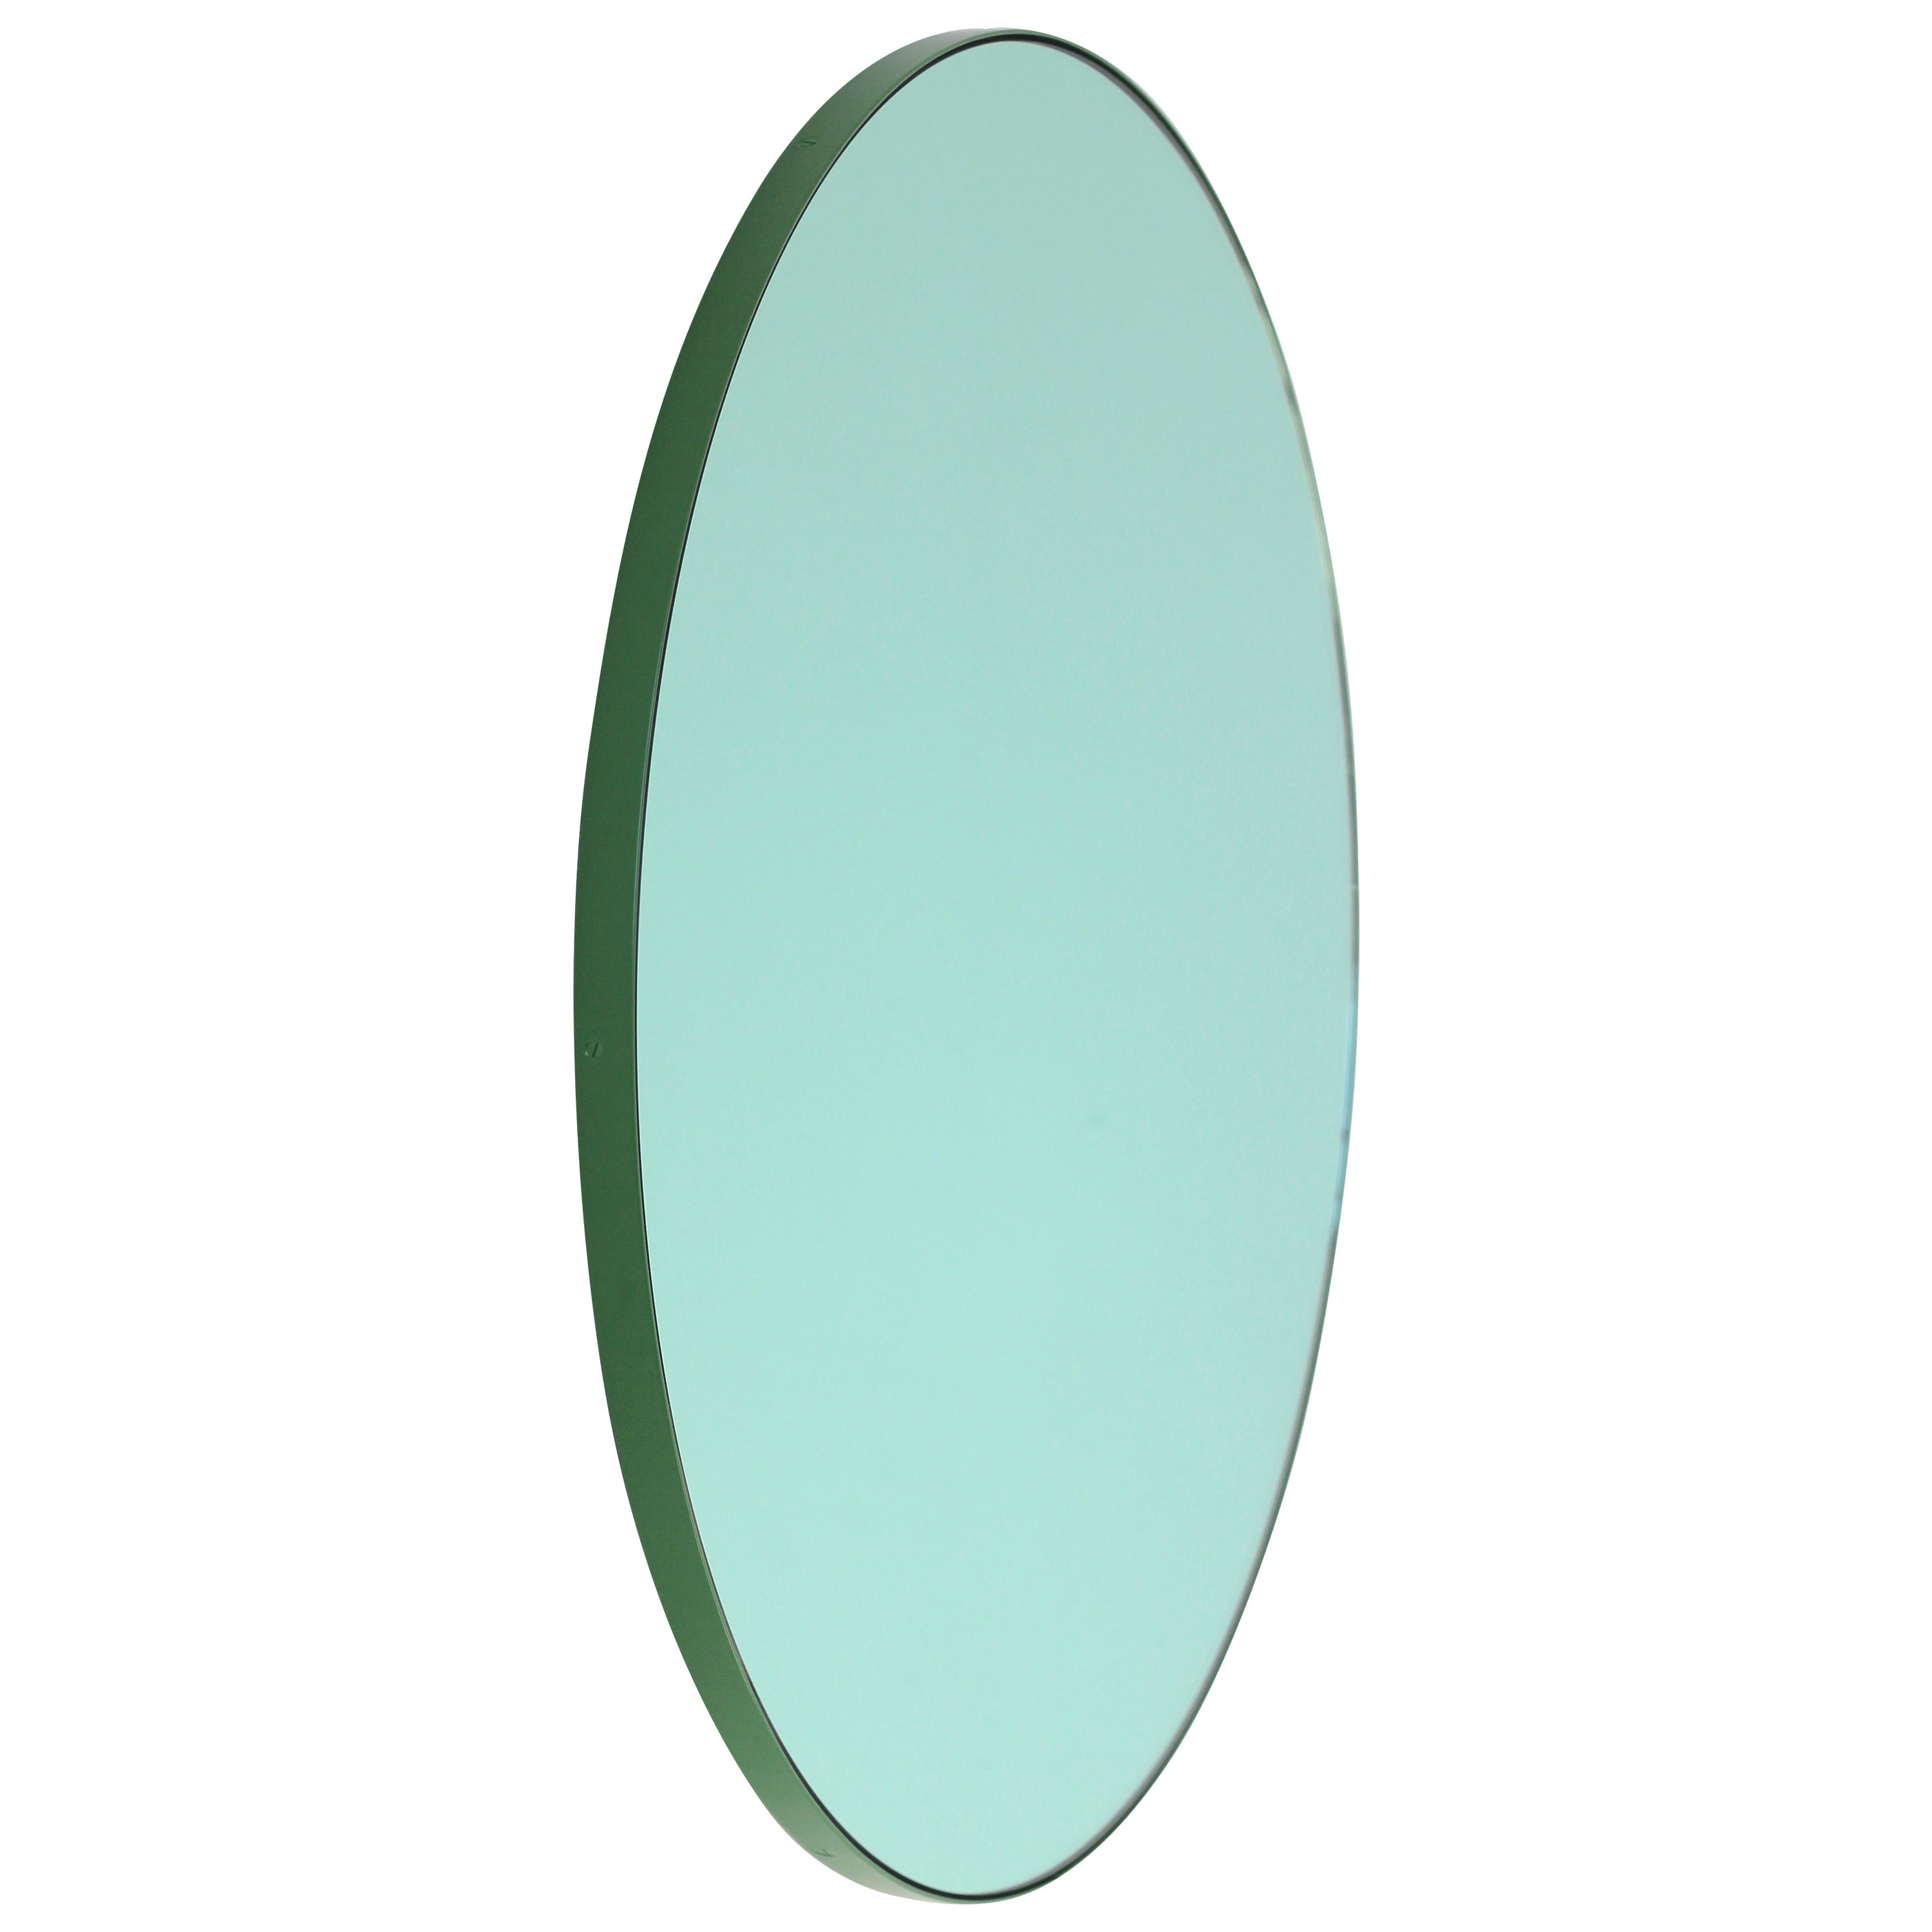 Orbis Green Tinted Handcrafted Round Mirror with Green Frame, Regular